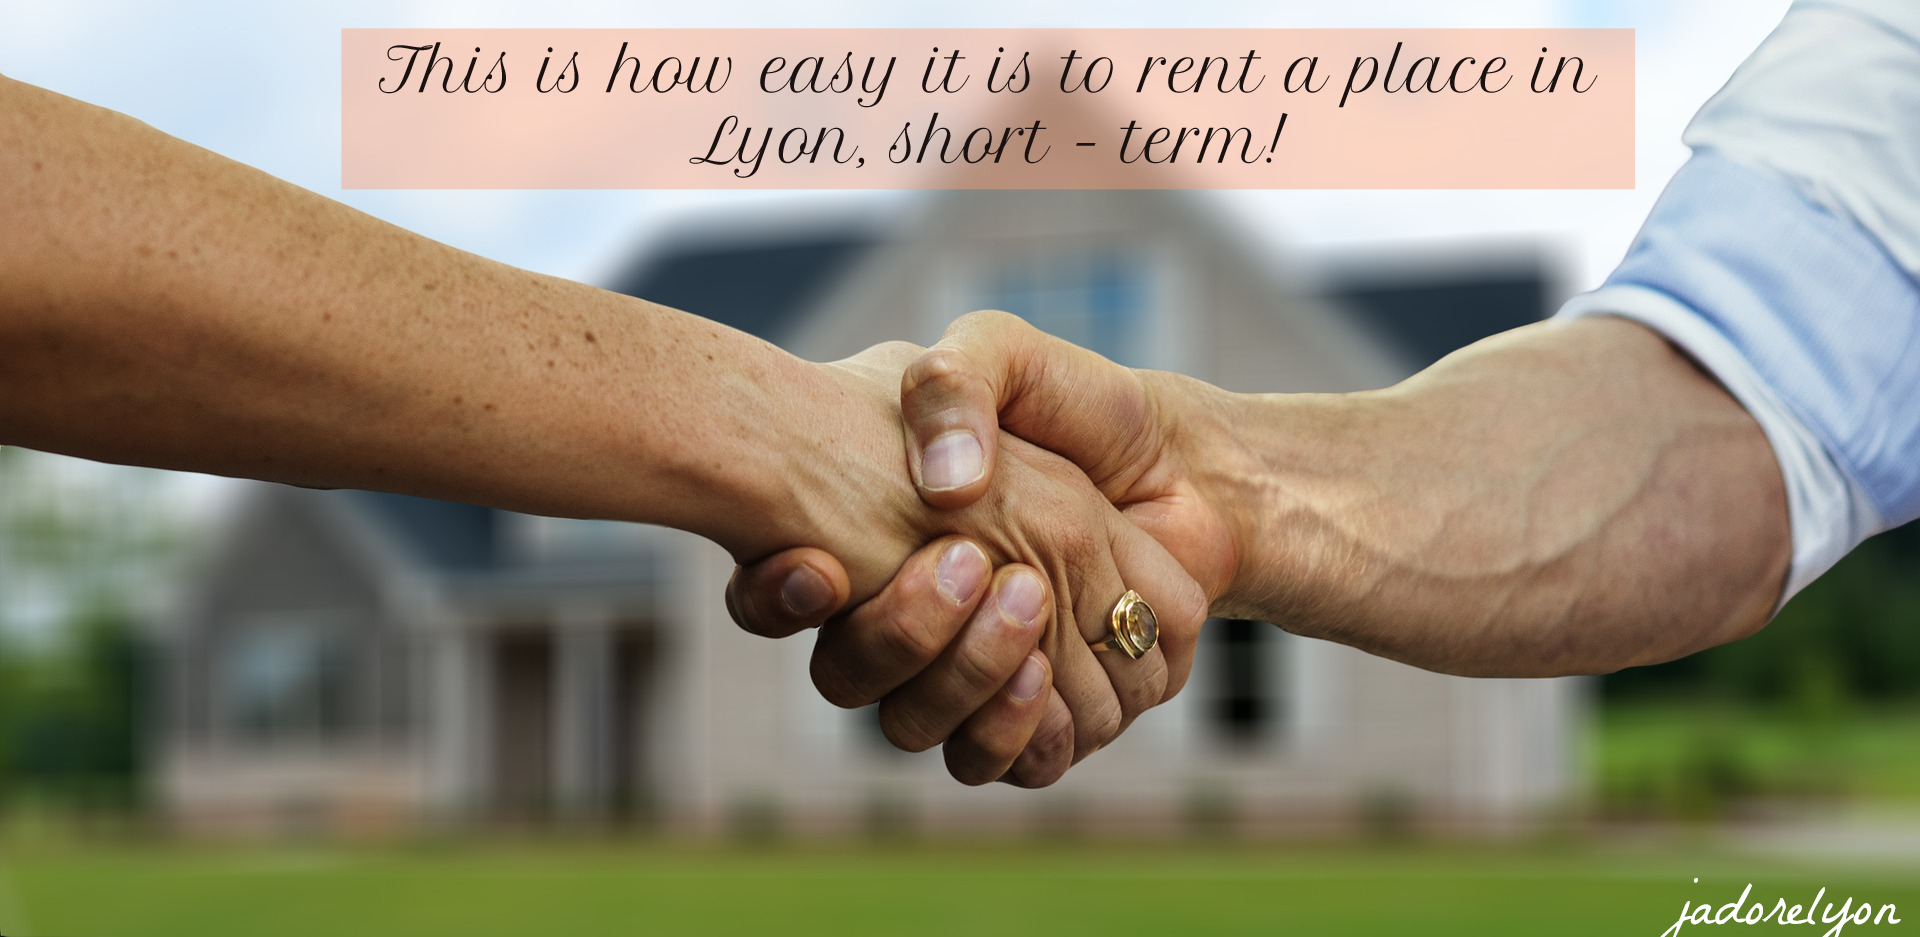 This is how easy it is to rent short term in Lyon